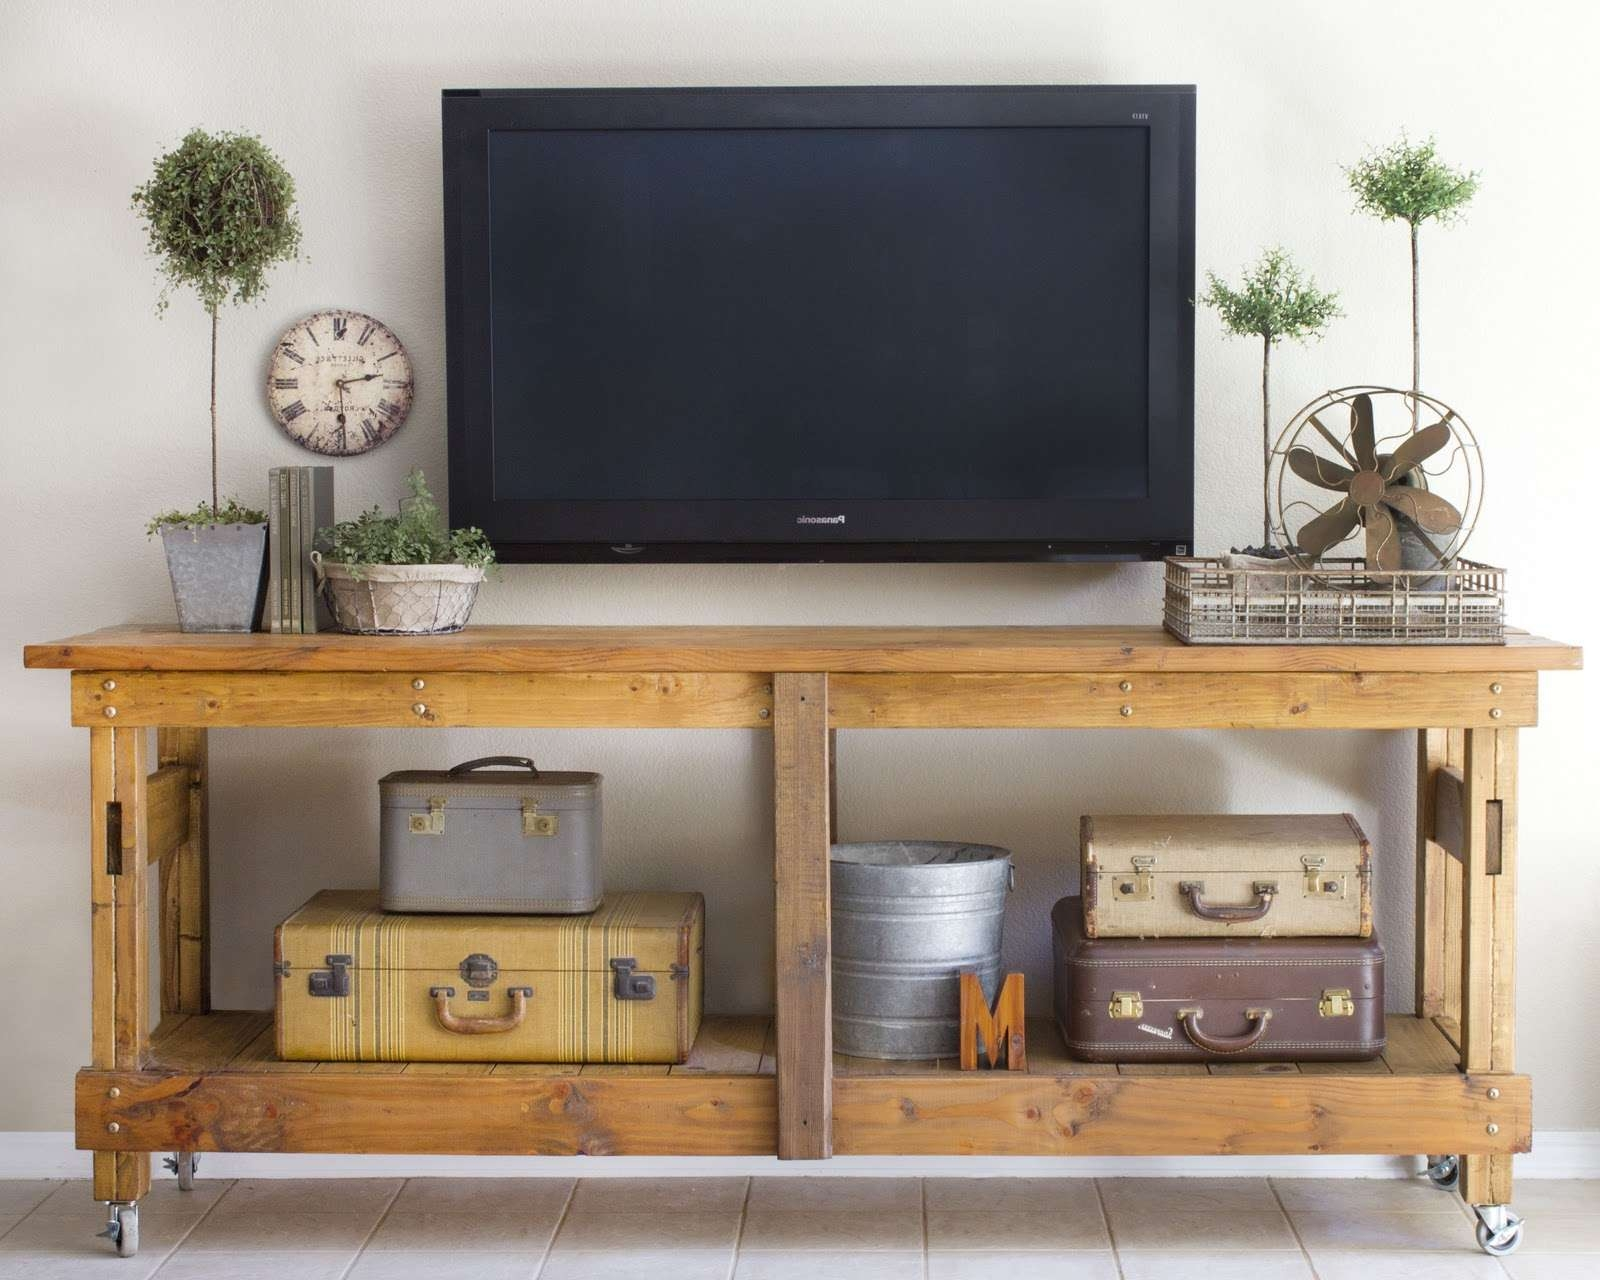 Cool Homemade Industrial Tv Stands With Vintage Suitcase Storage Inside  Wooden Tv Stands With Wheels (